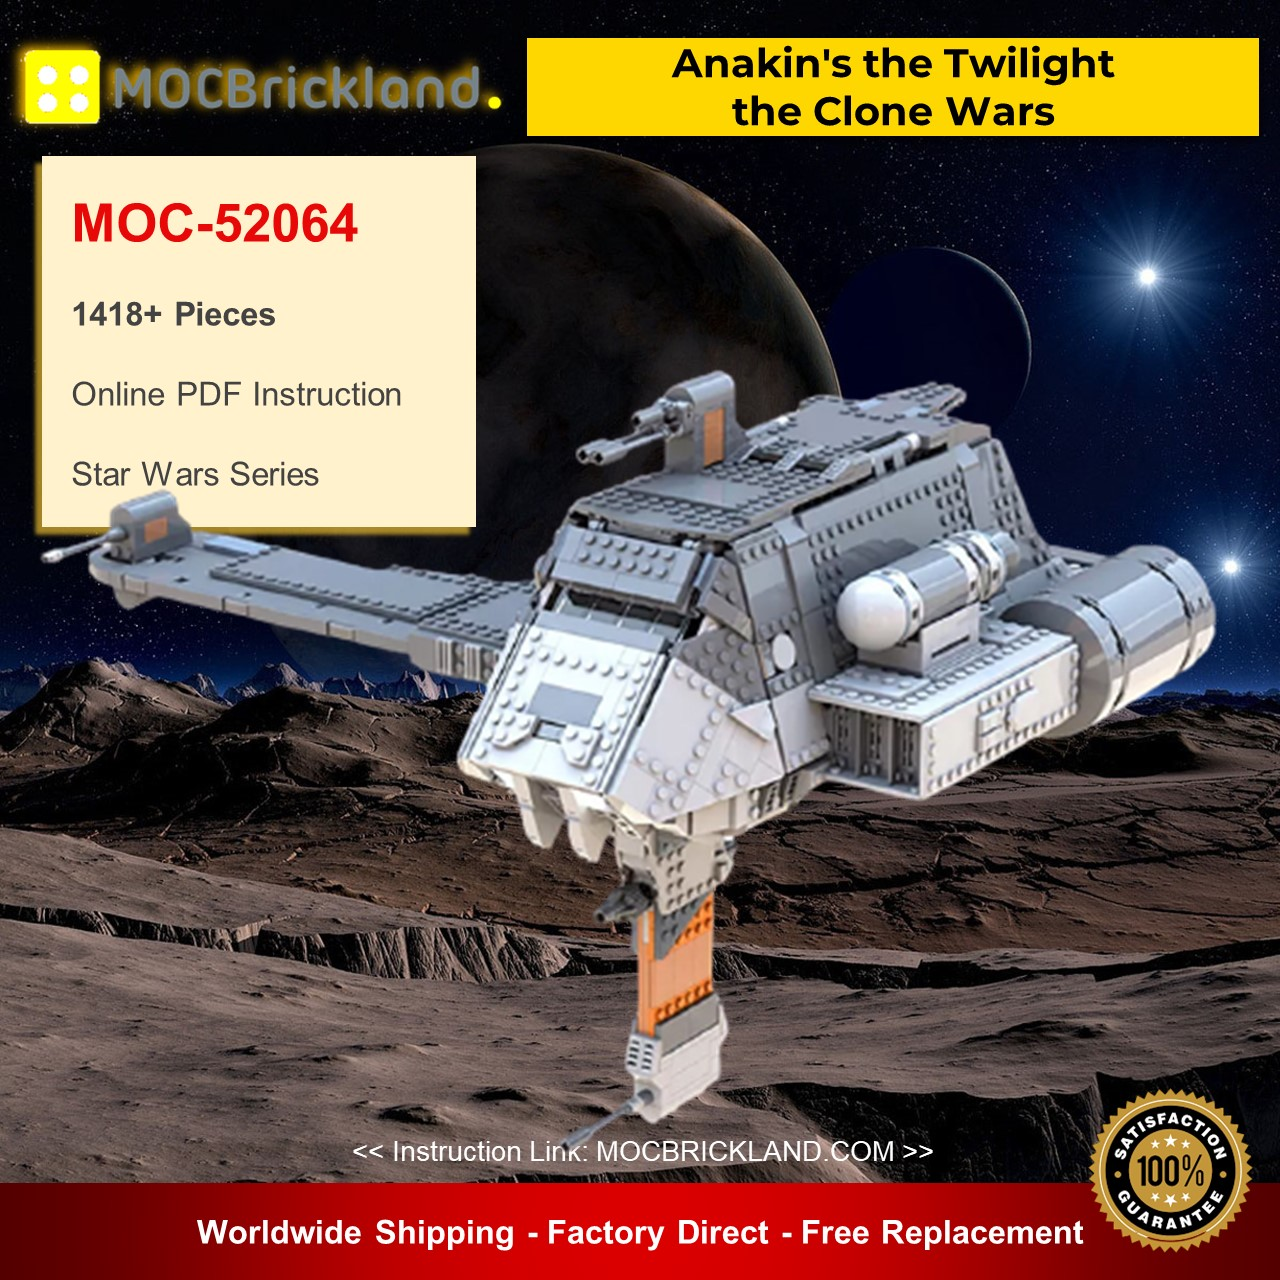 Star wars moc-52064 anakin's the twilight - the clone wars by bruxxy mocbrickland